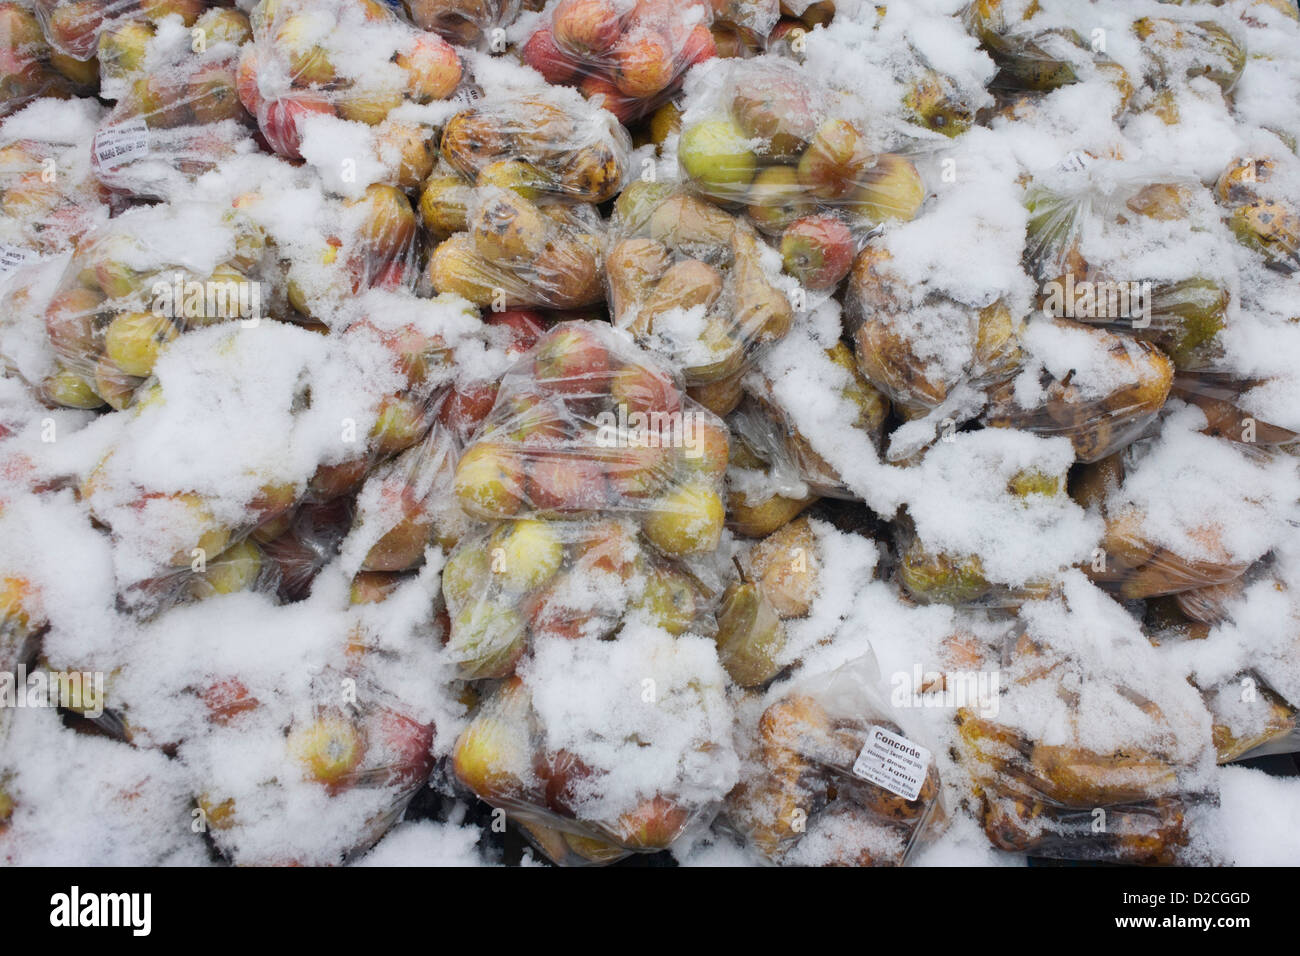 Snow-covered bags of Concorde apples on sale at an outside farmer's market in south London. It is mid-winter - Stock Image